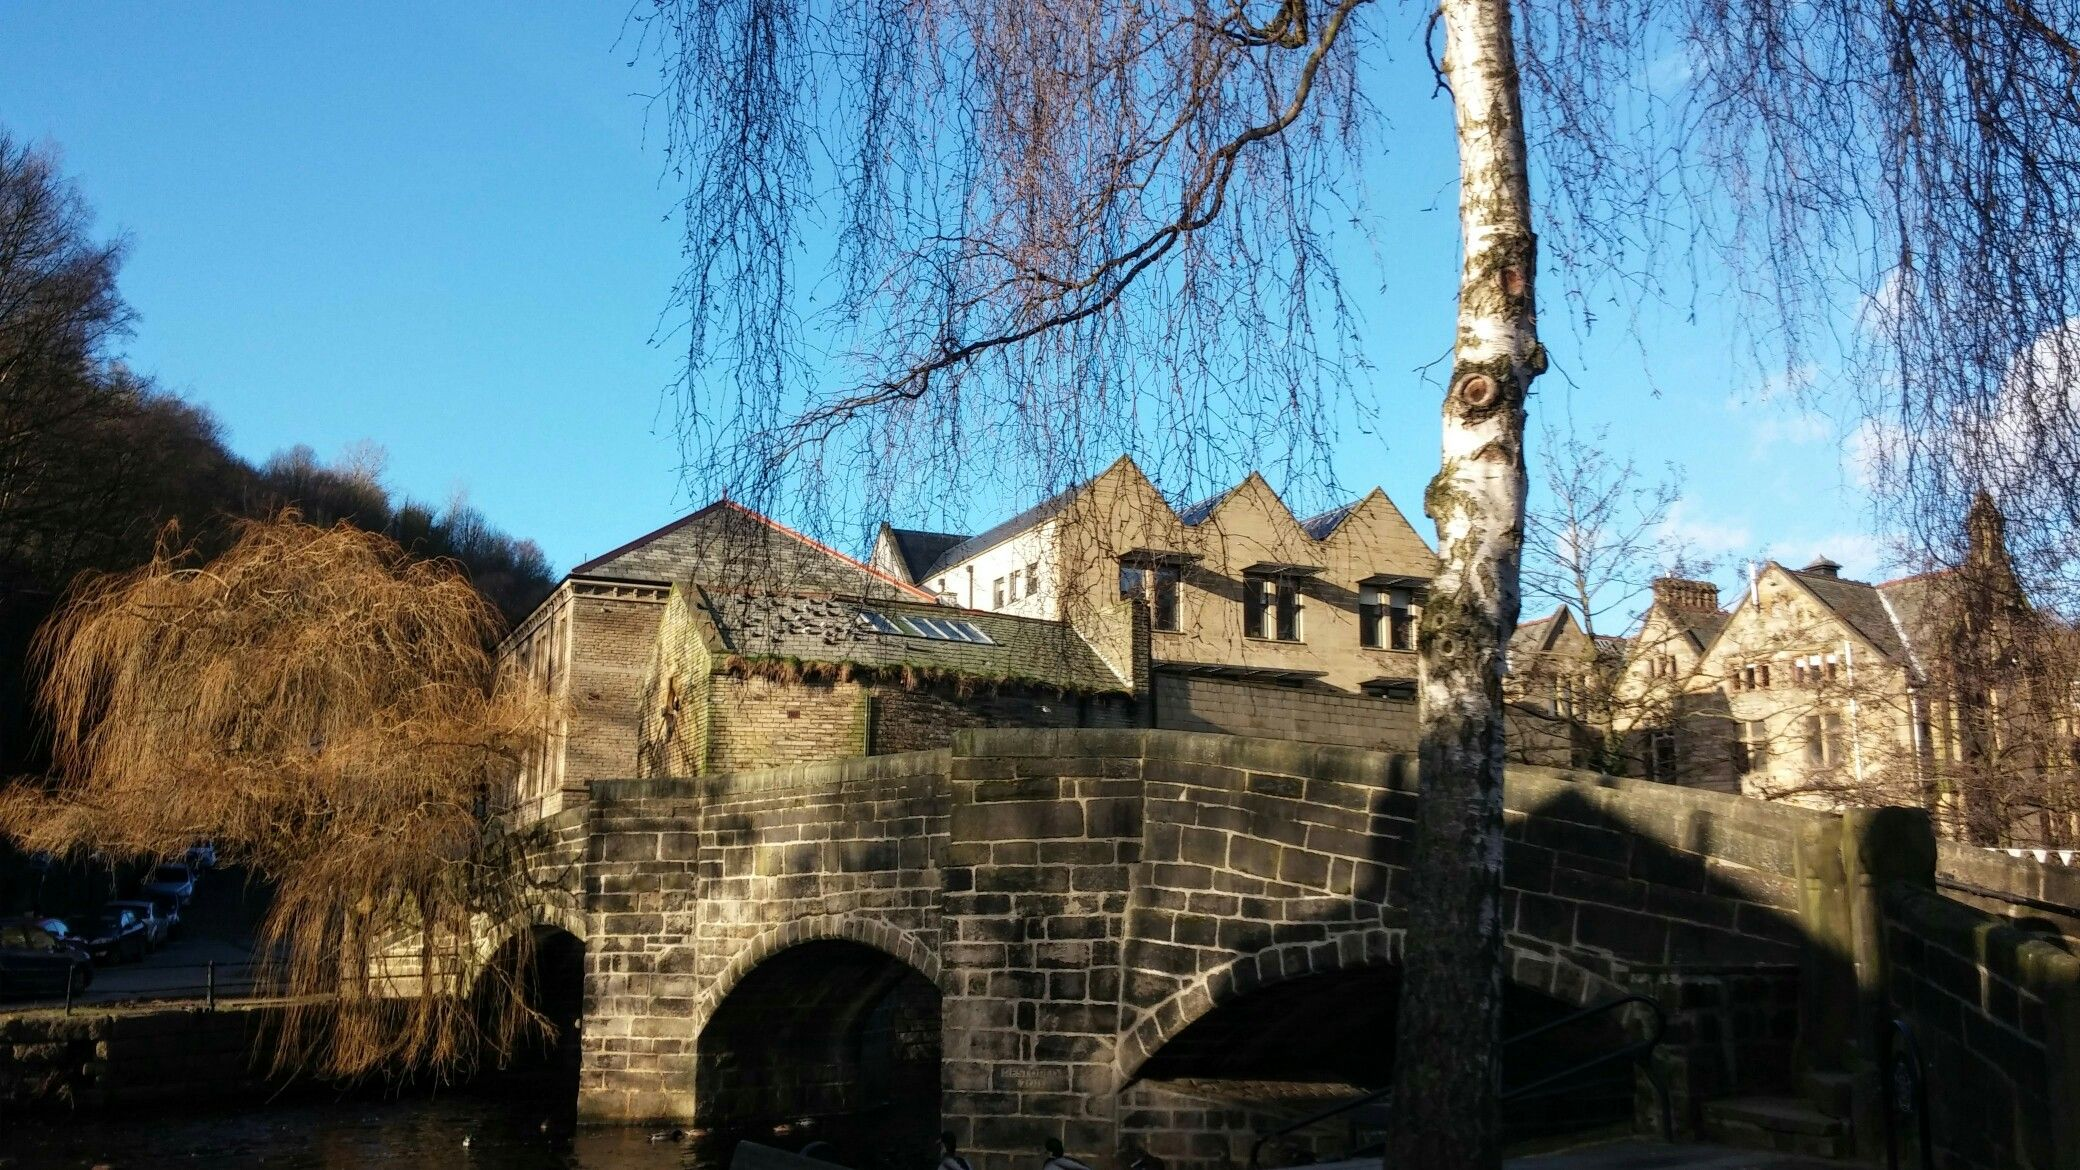 The Packhorse Bridge in the middle of winter